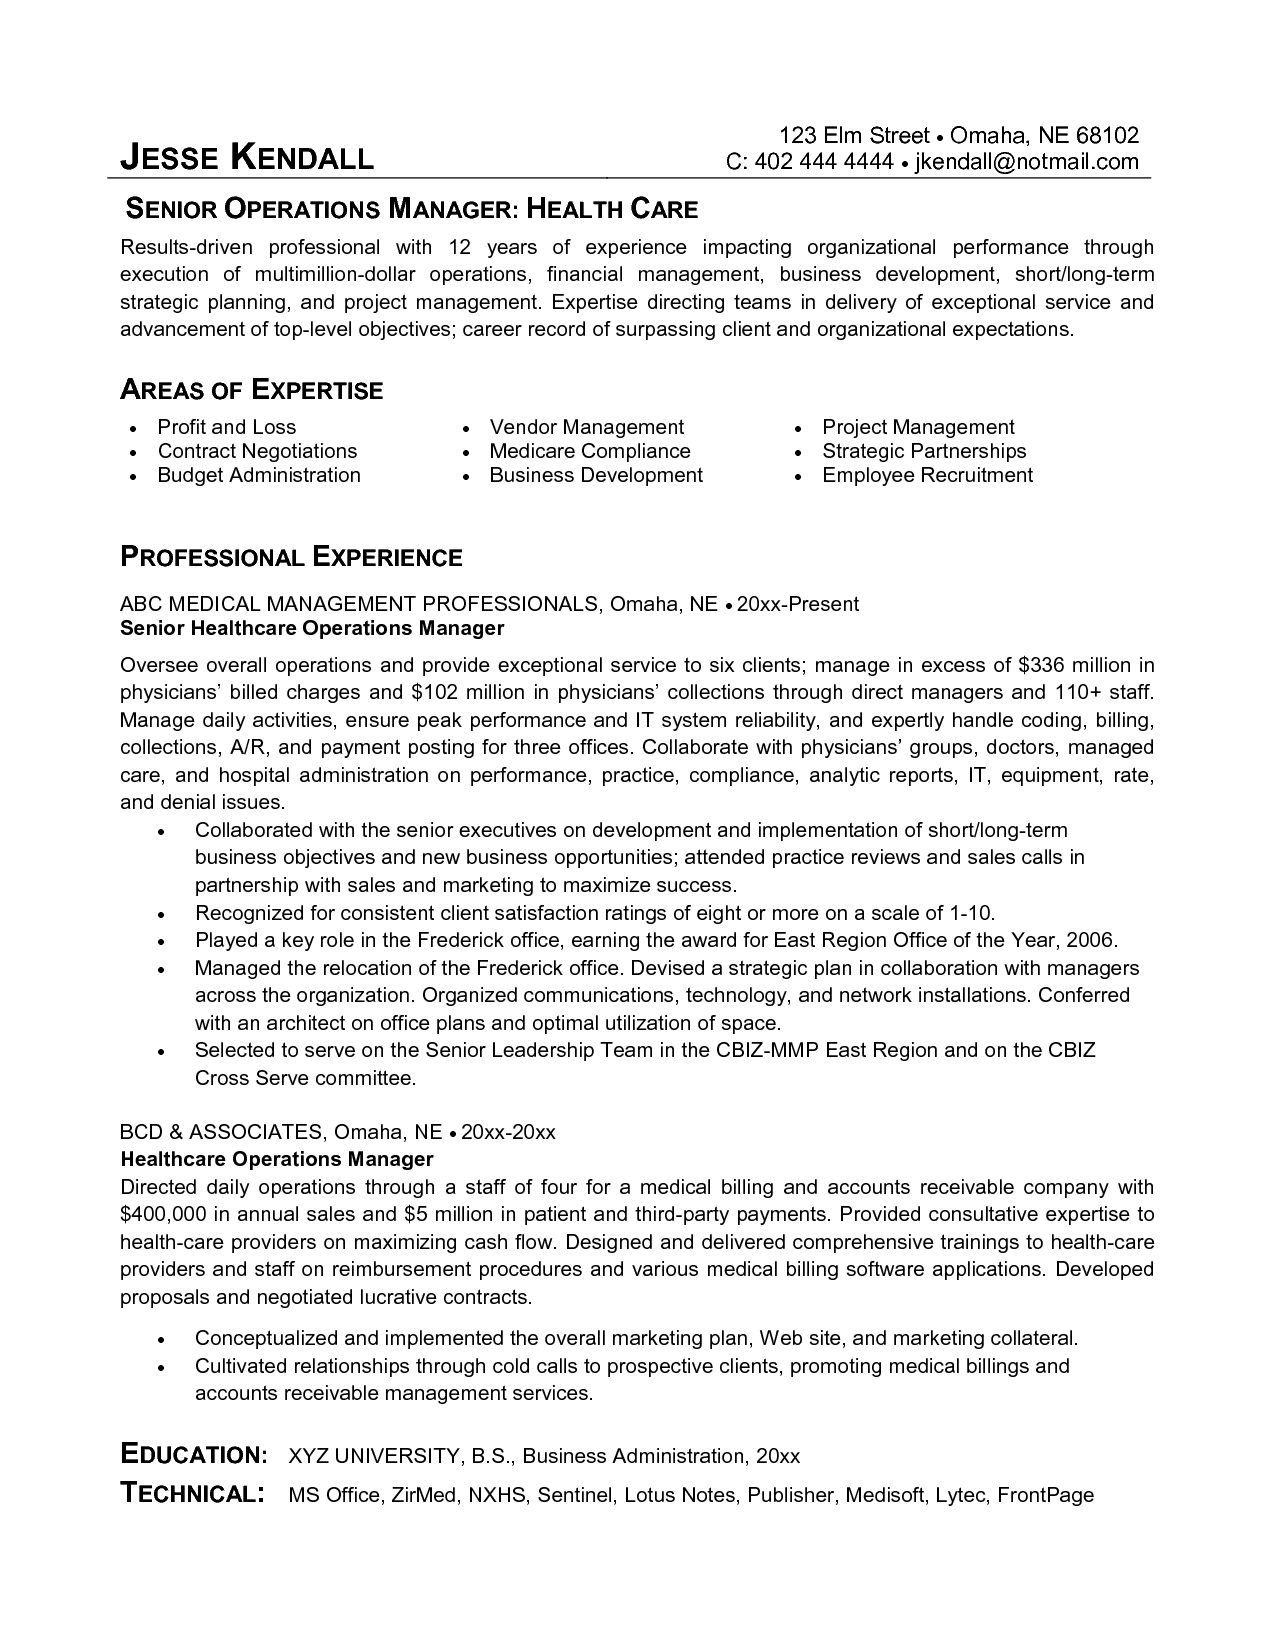 Resume Examples Healthcare Management | career tips | Resume ...